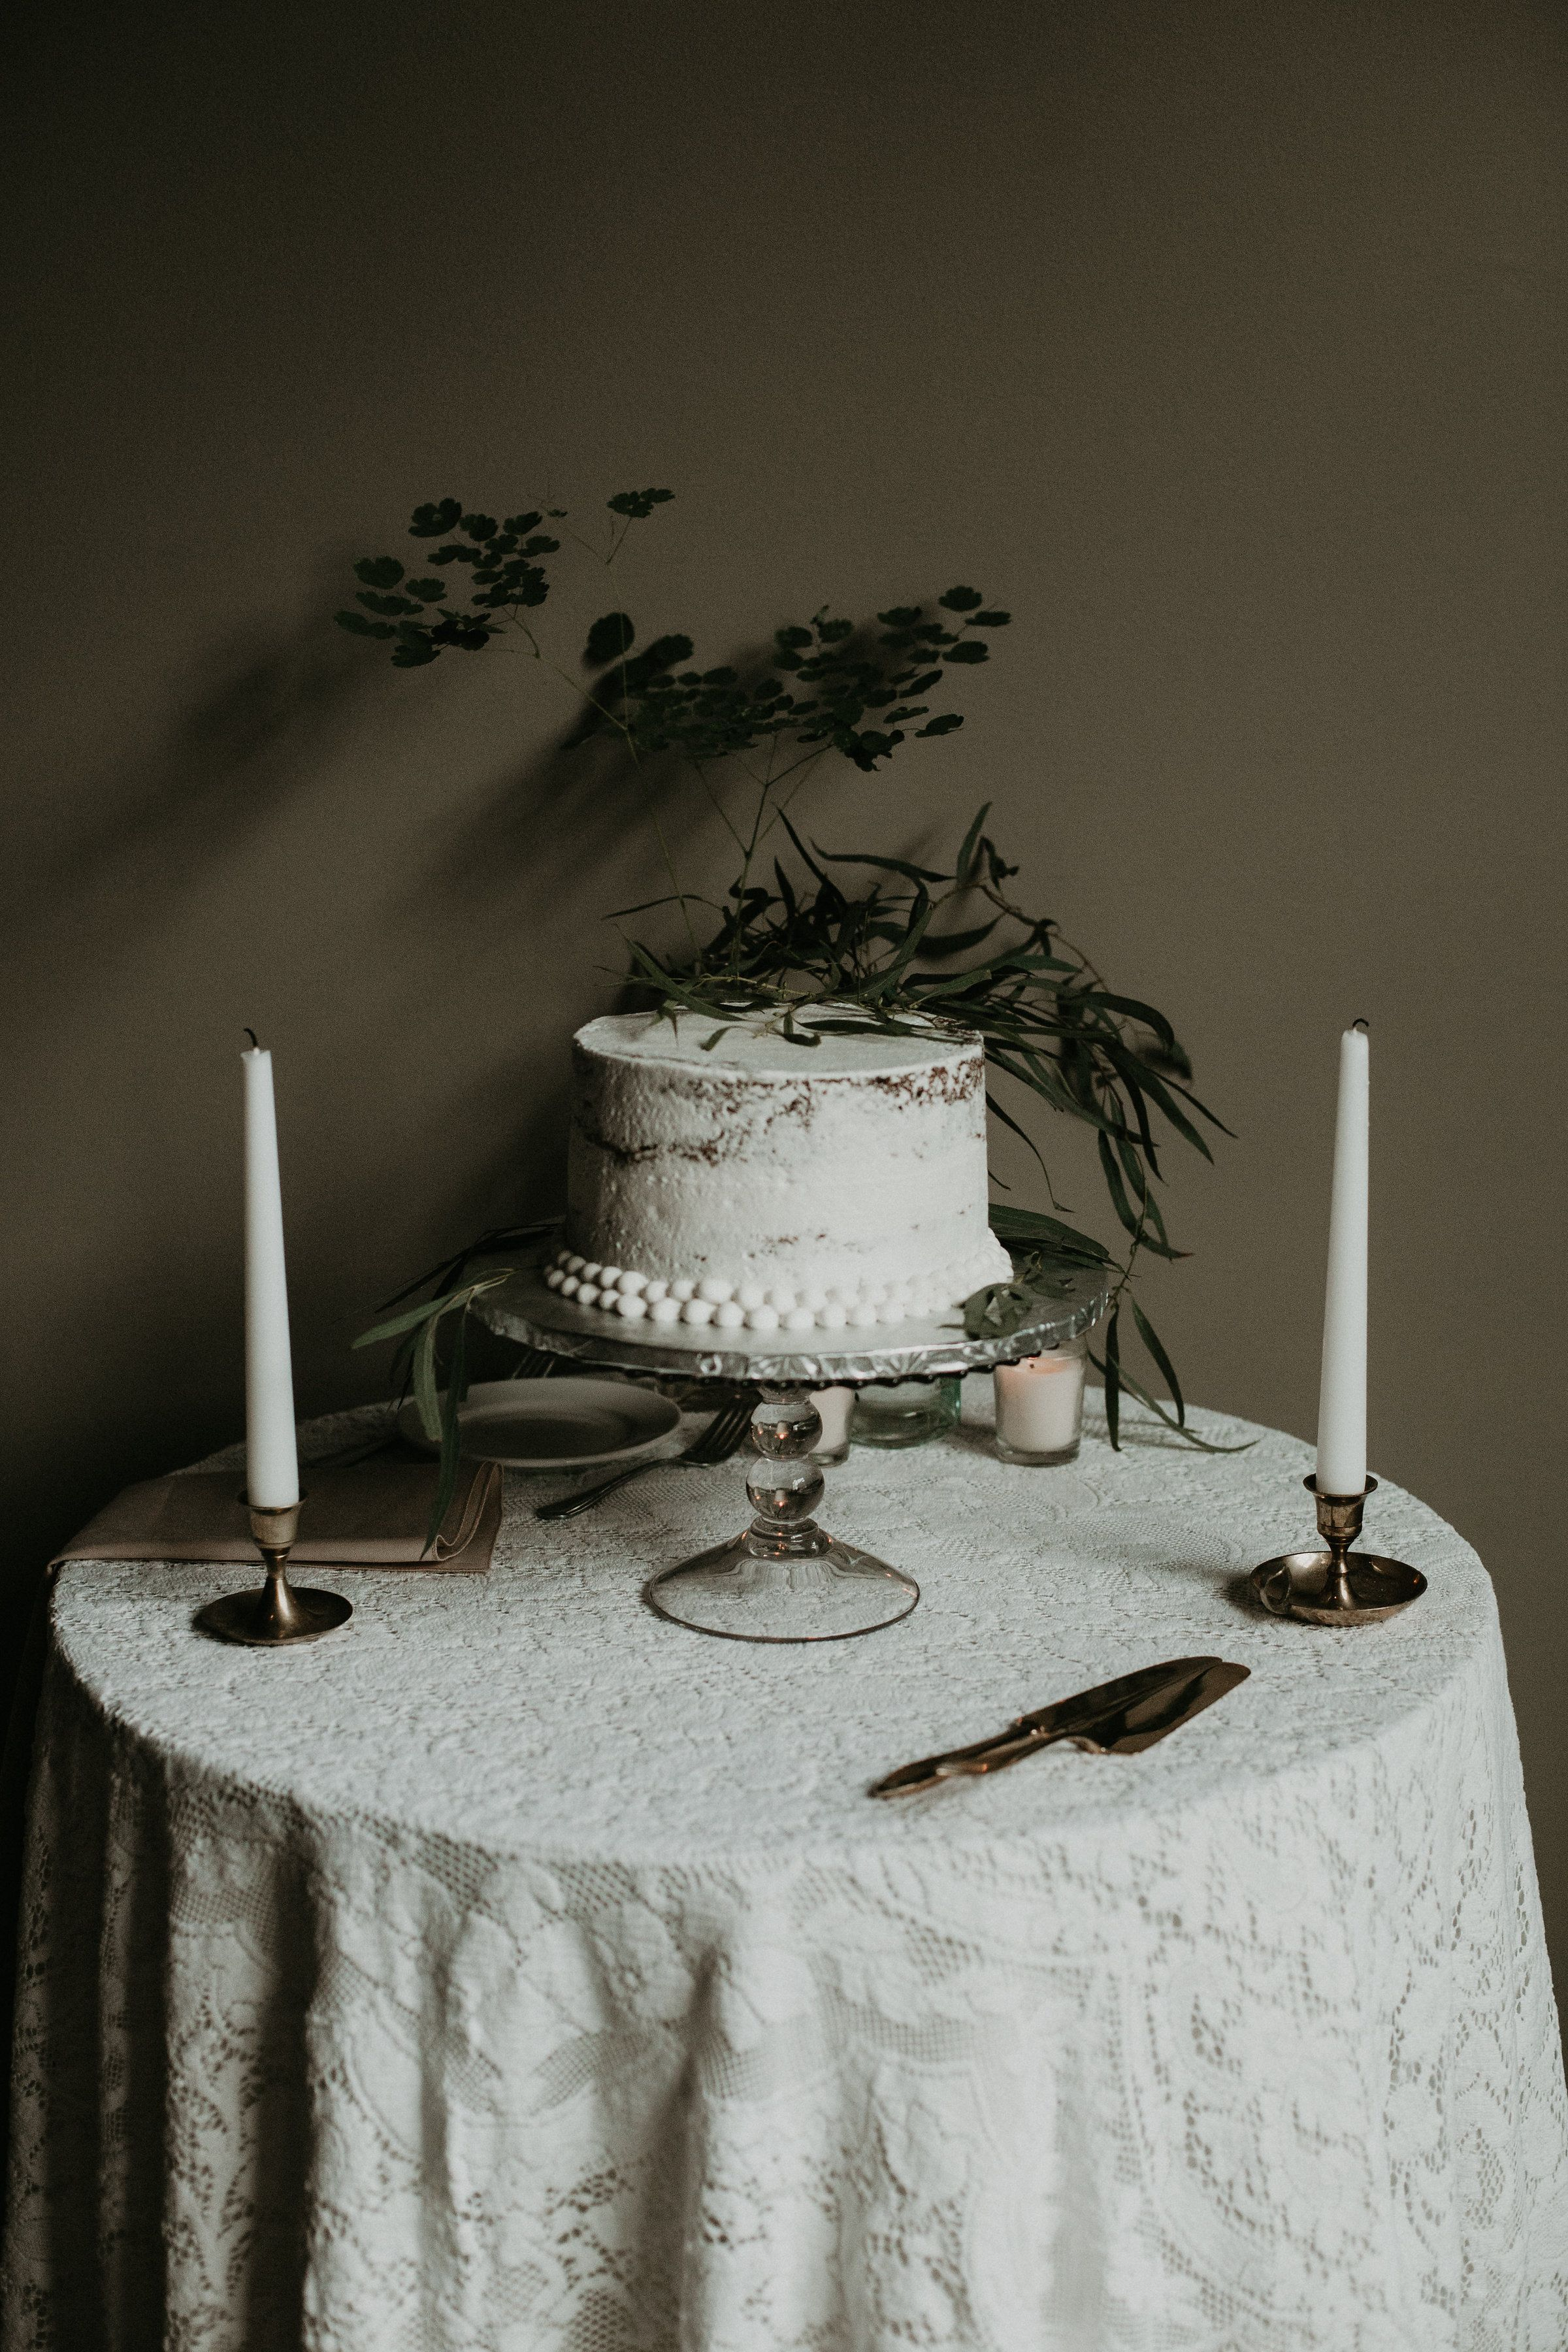 chair cover rentals madison wi armrest covers for office chairs linen l white ivory lace in 2018 decor photo bear warner if you are looking those little extras your event we on the project our vintage table linens set up this cake